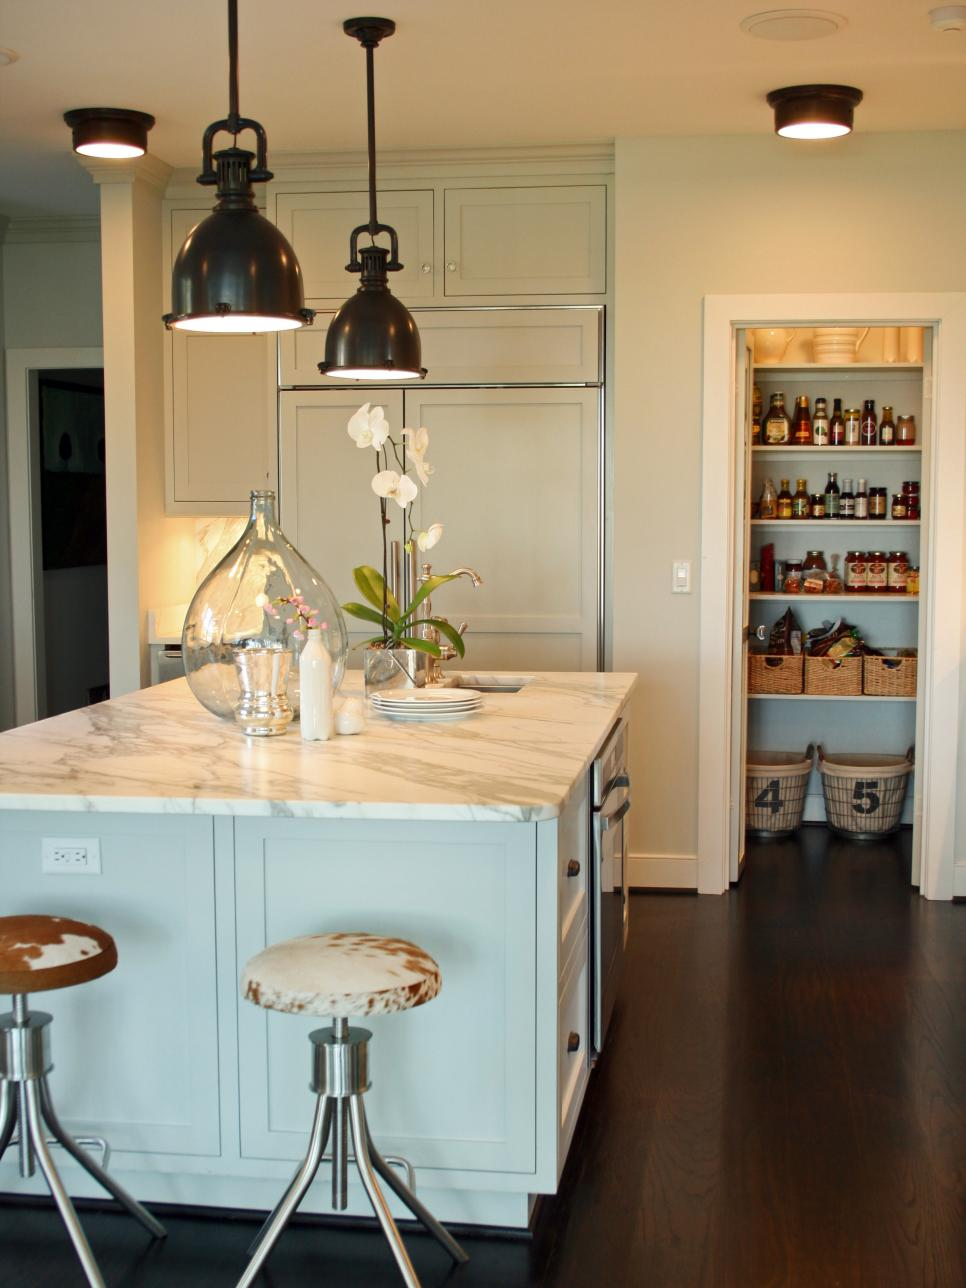 Kitchen Design Lighting Stunning Kitchen Lighting Design Tips  Hgtv Decorating Design